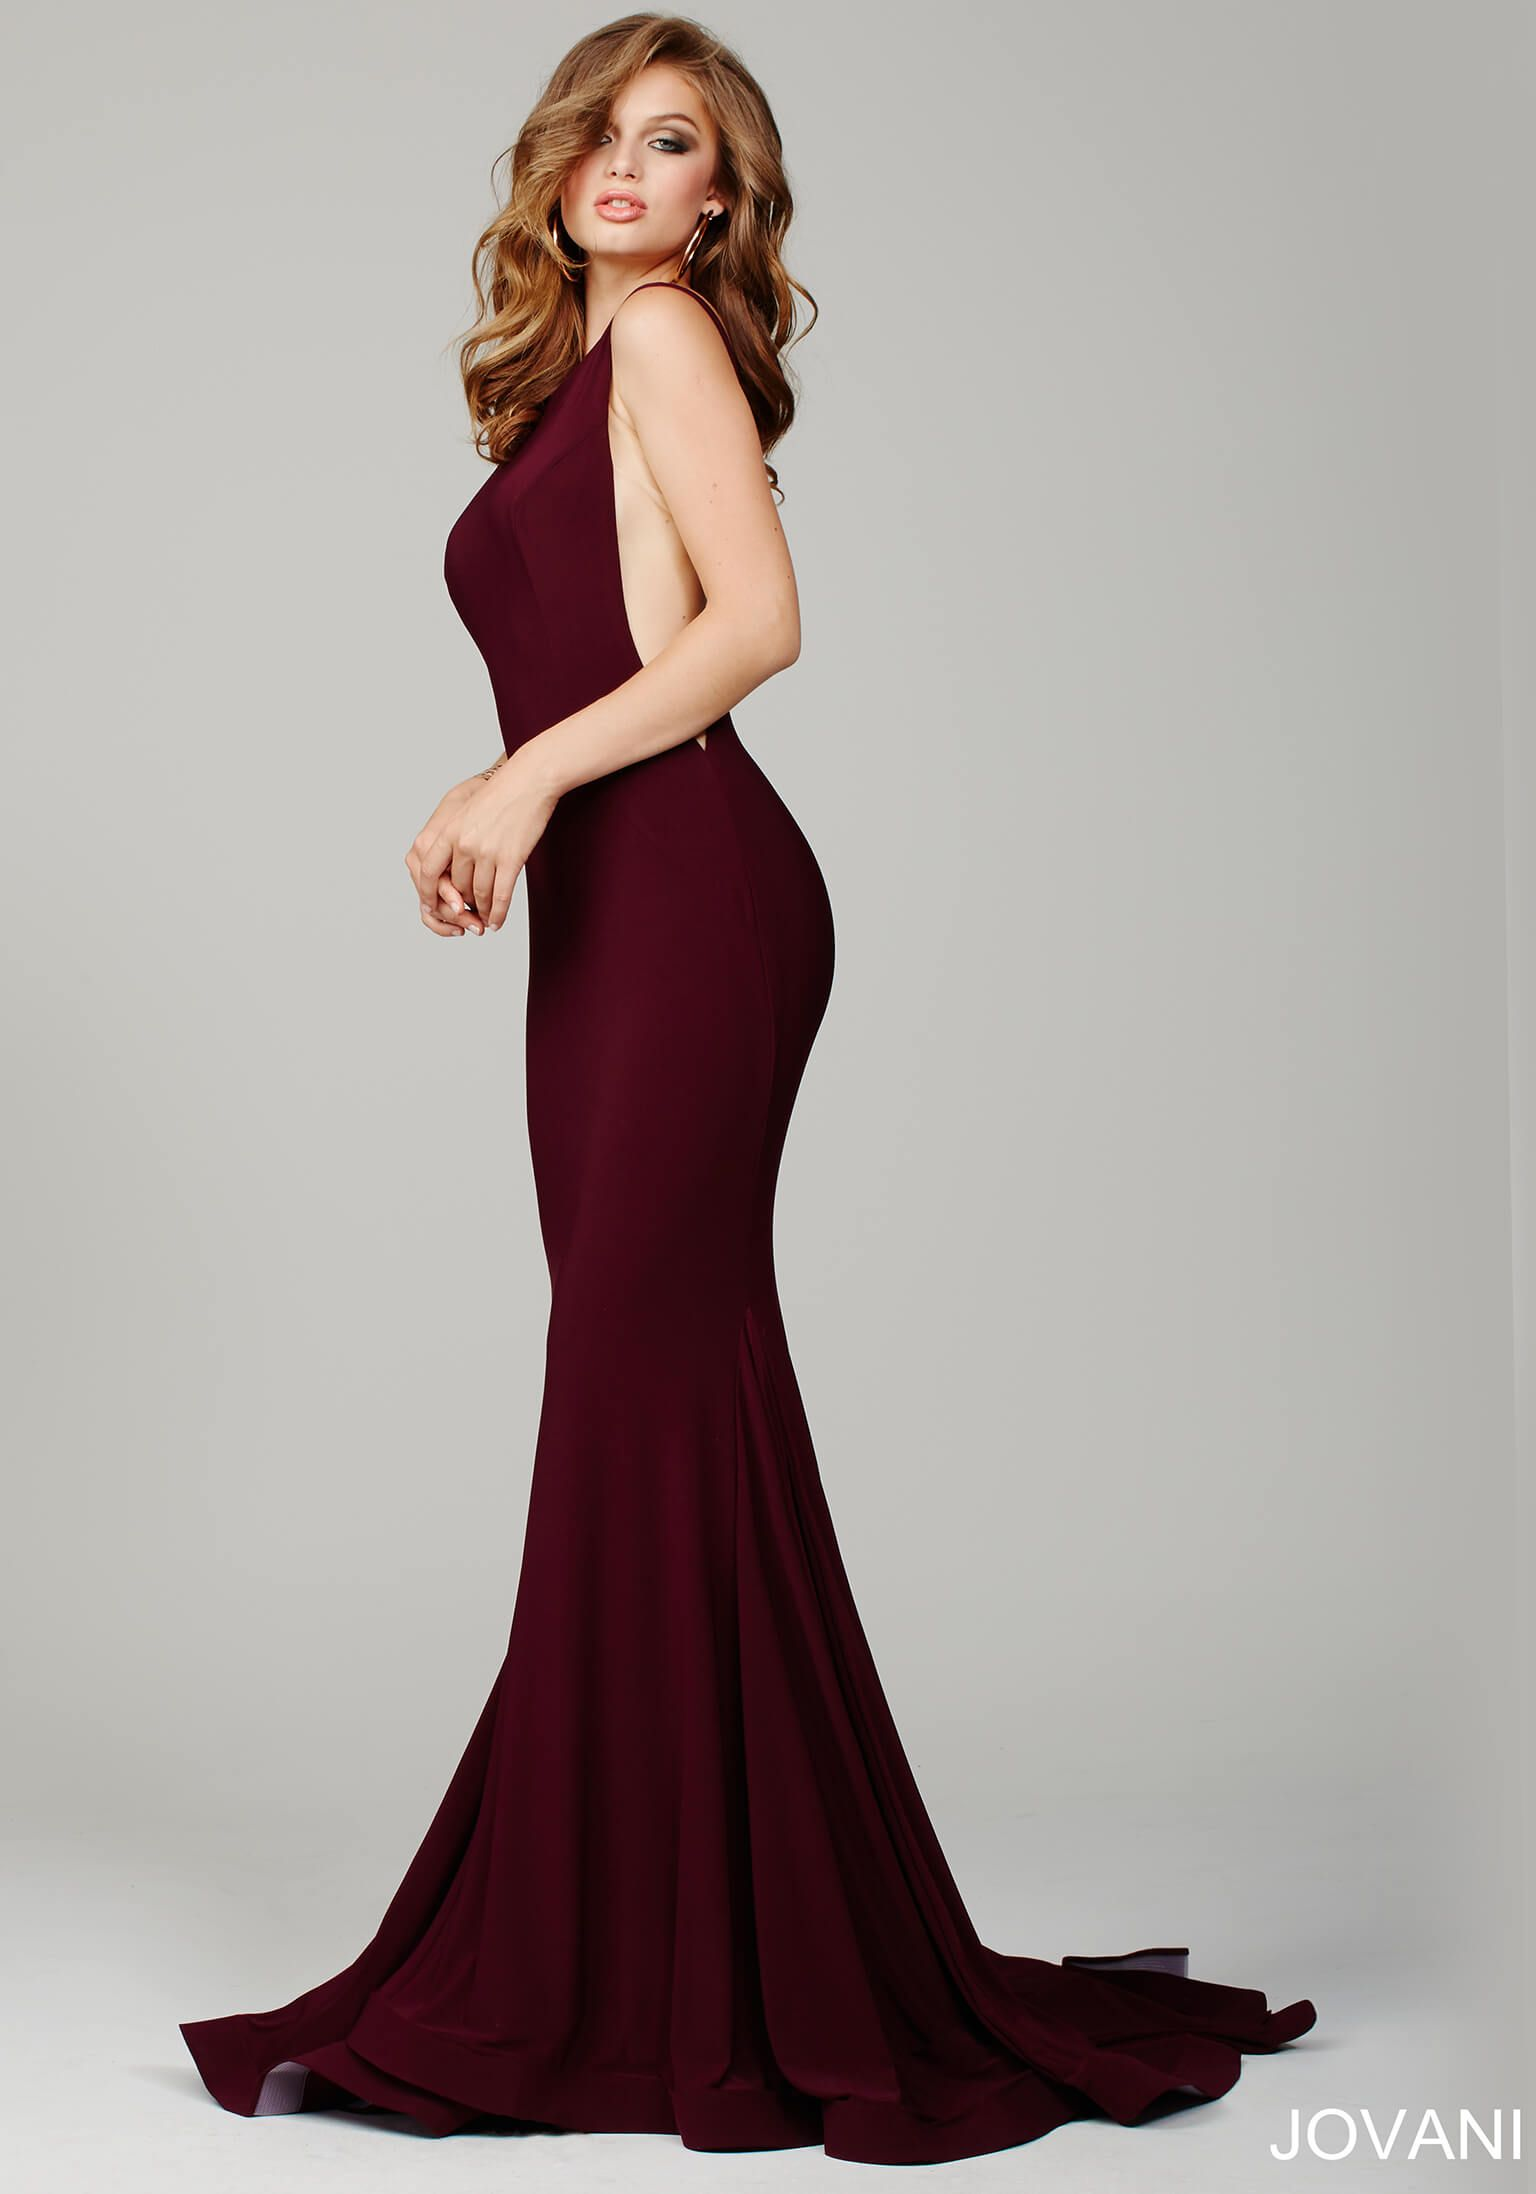 Burgundy Prom Dress by Jovani This form fitting prom gown